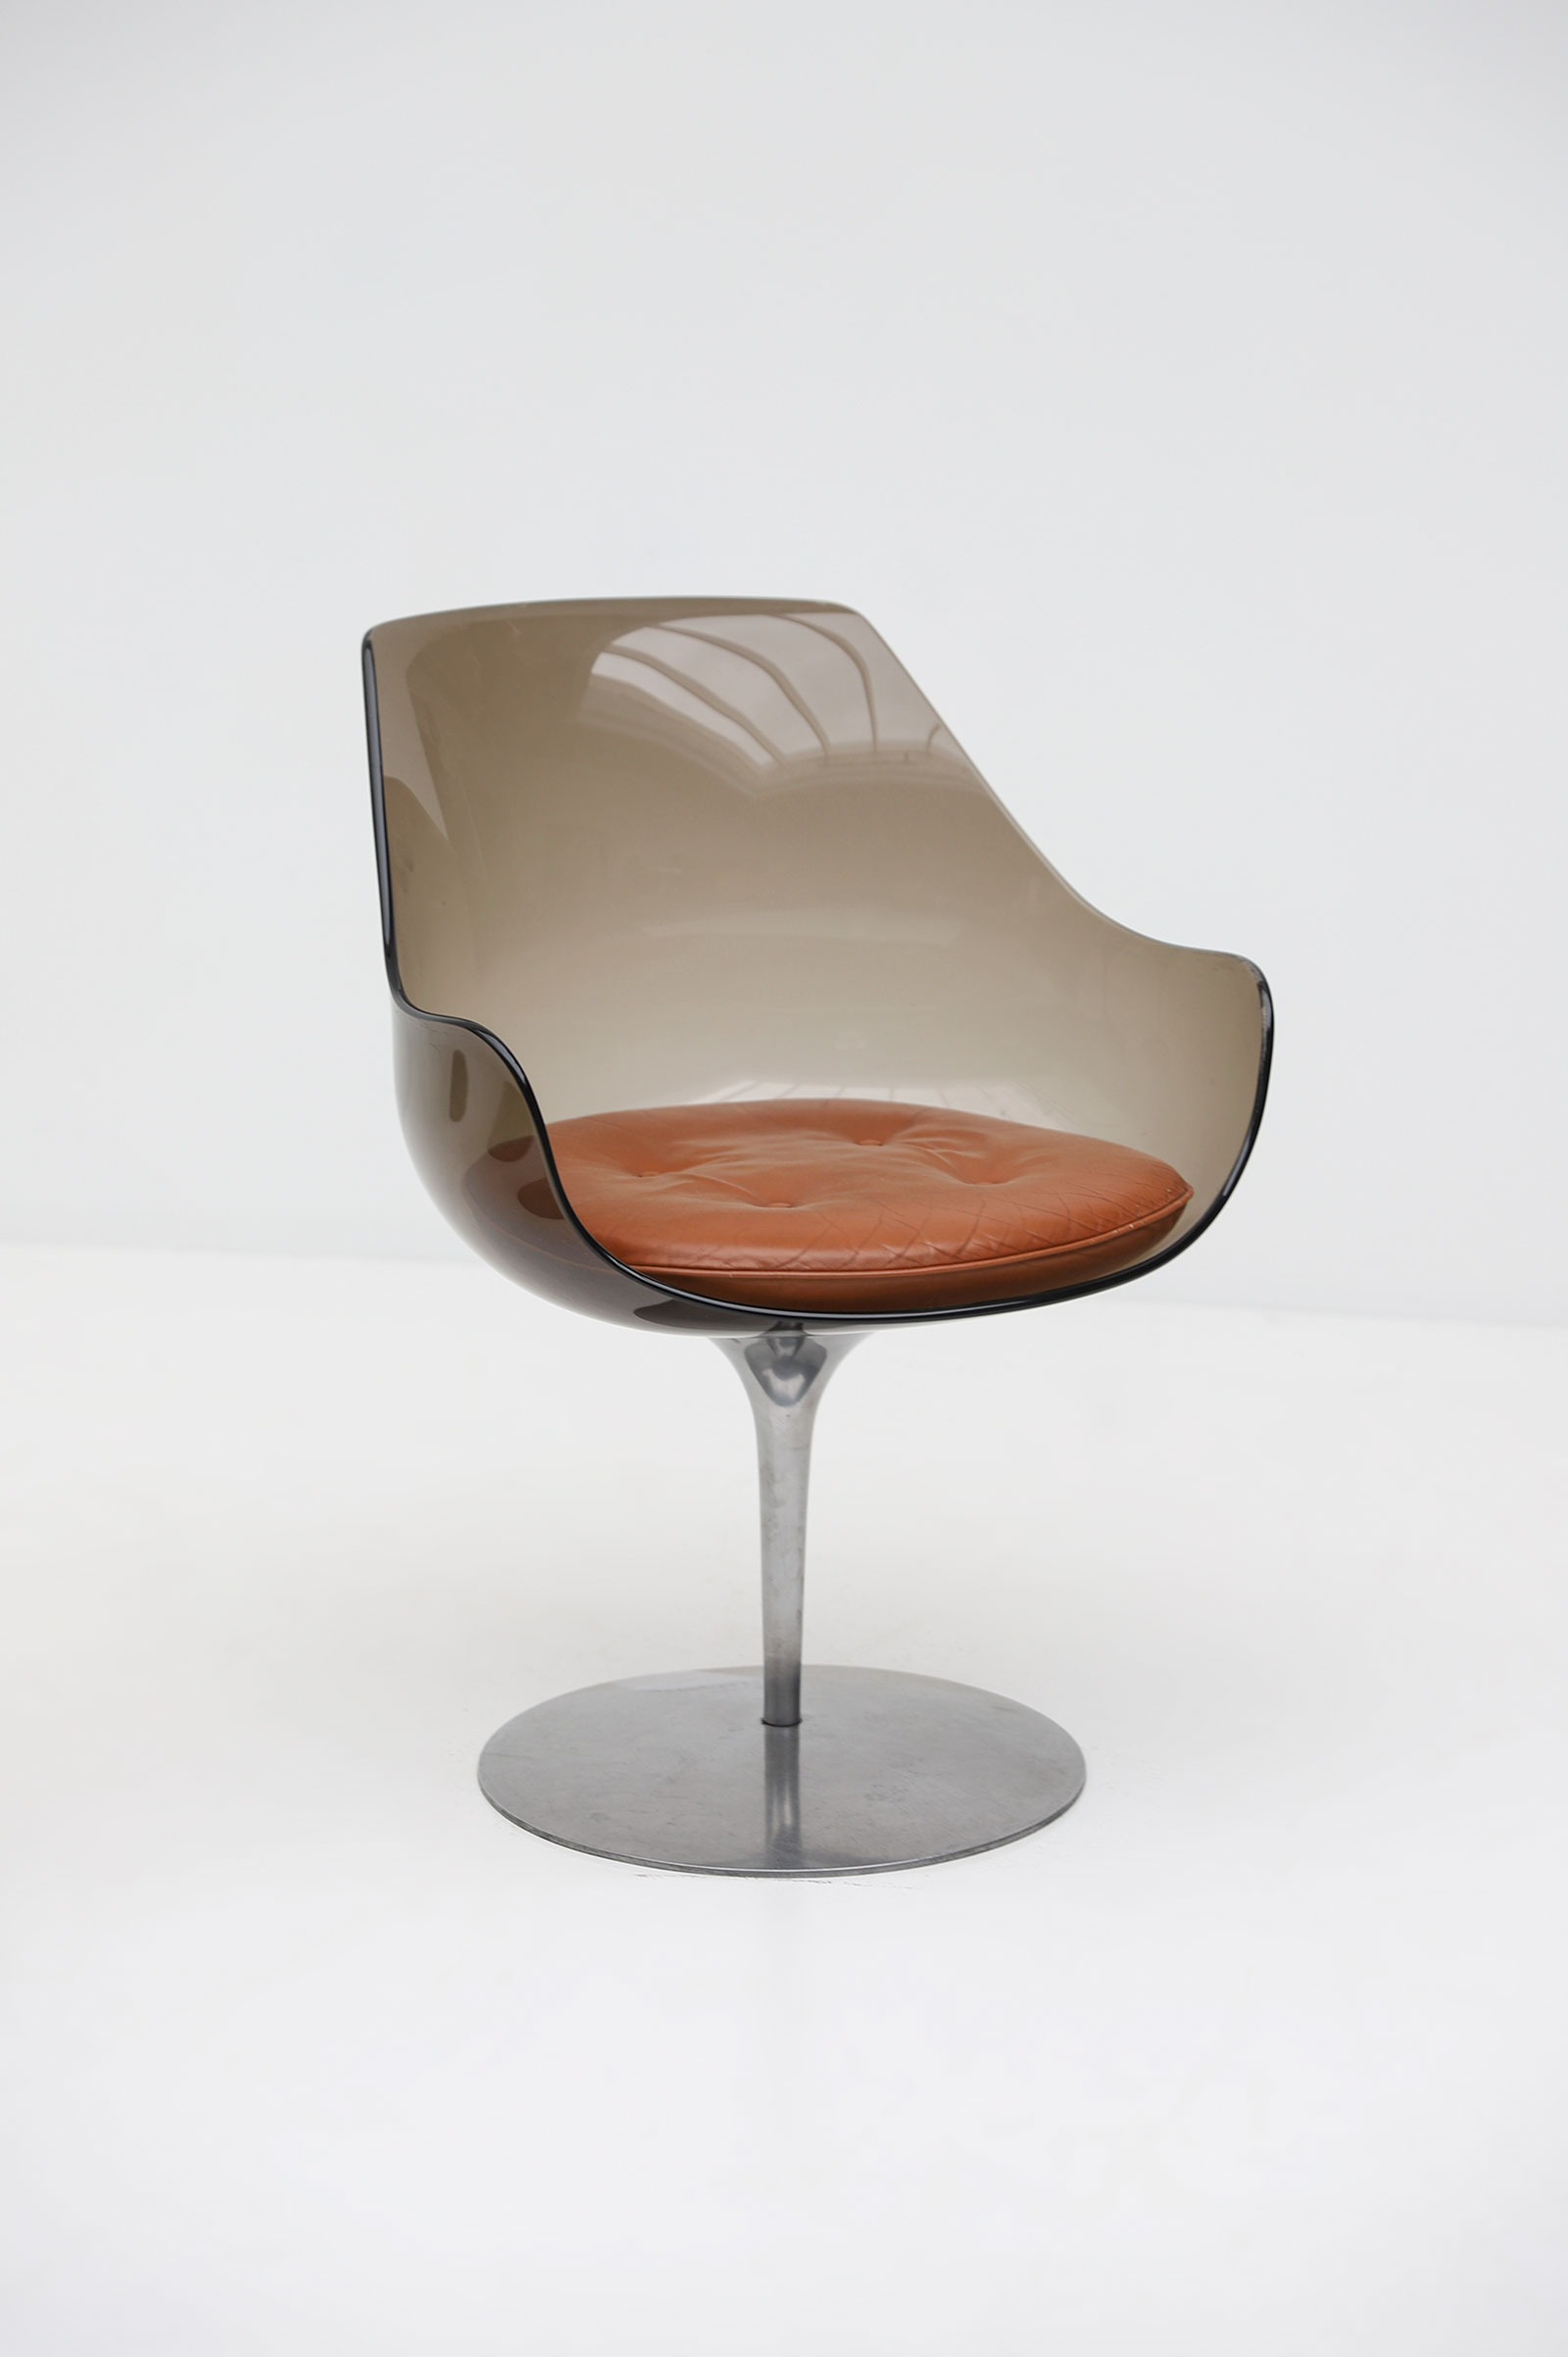 Laverne Champagne Chairs for  Formes Nouvelles